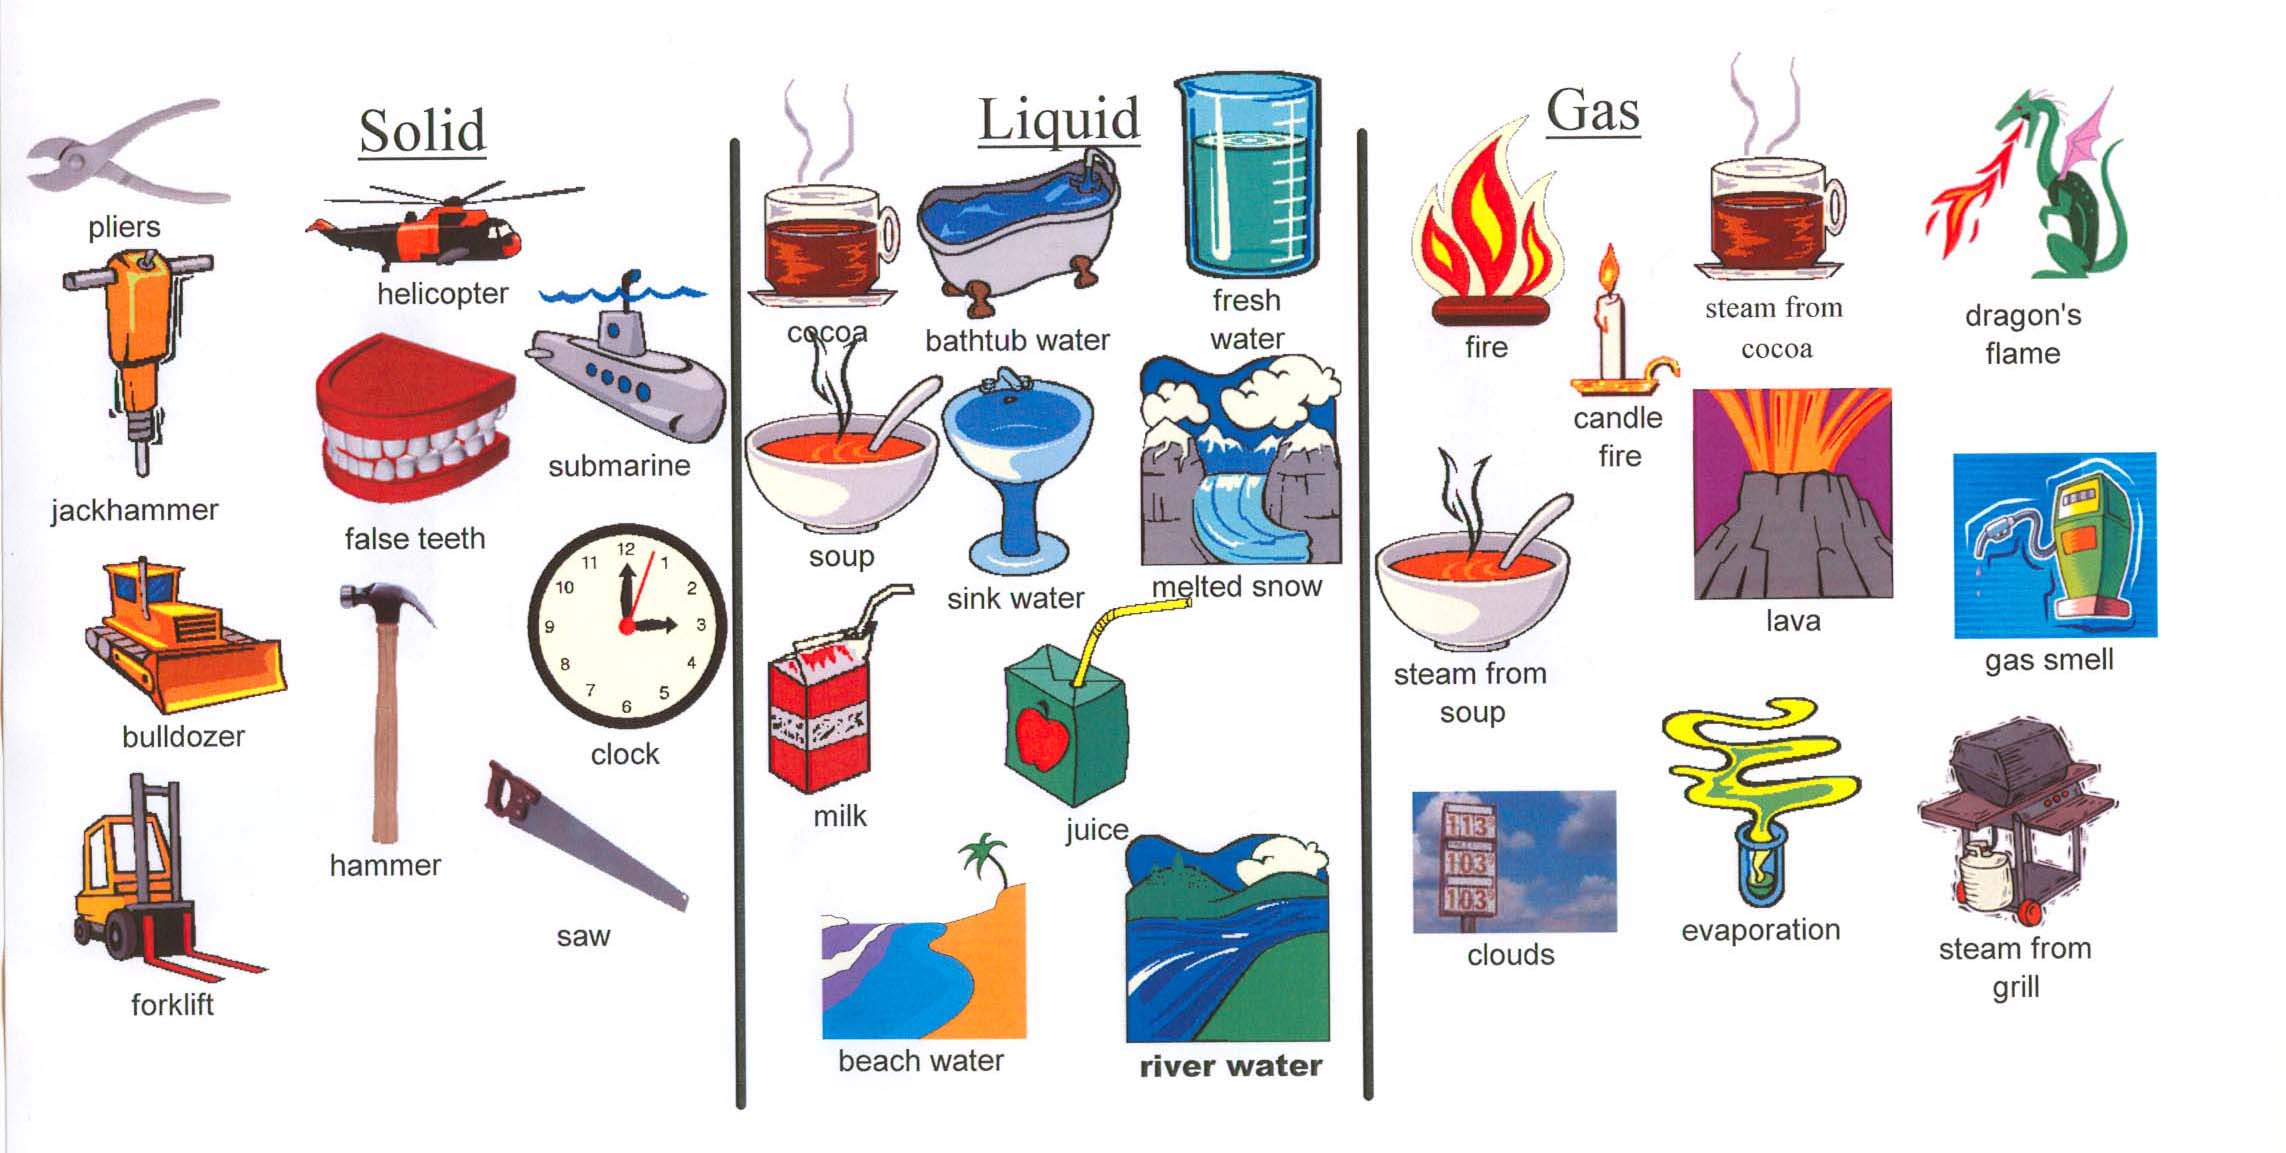 Examples of gas clipart clipart Copy Of Liquid, Solid, Gas - Lessons - Tes Teach clipart